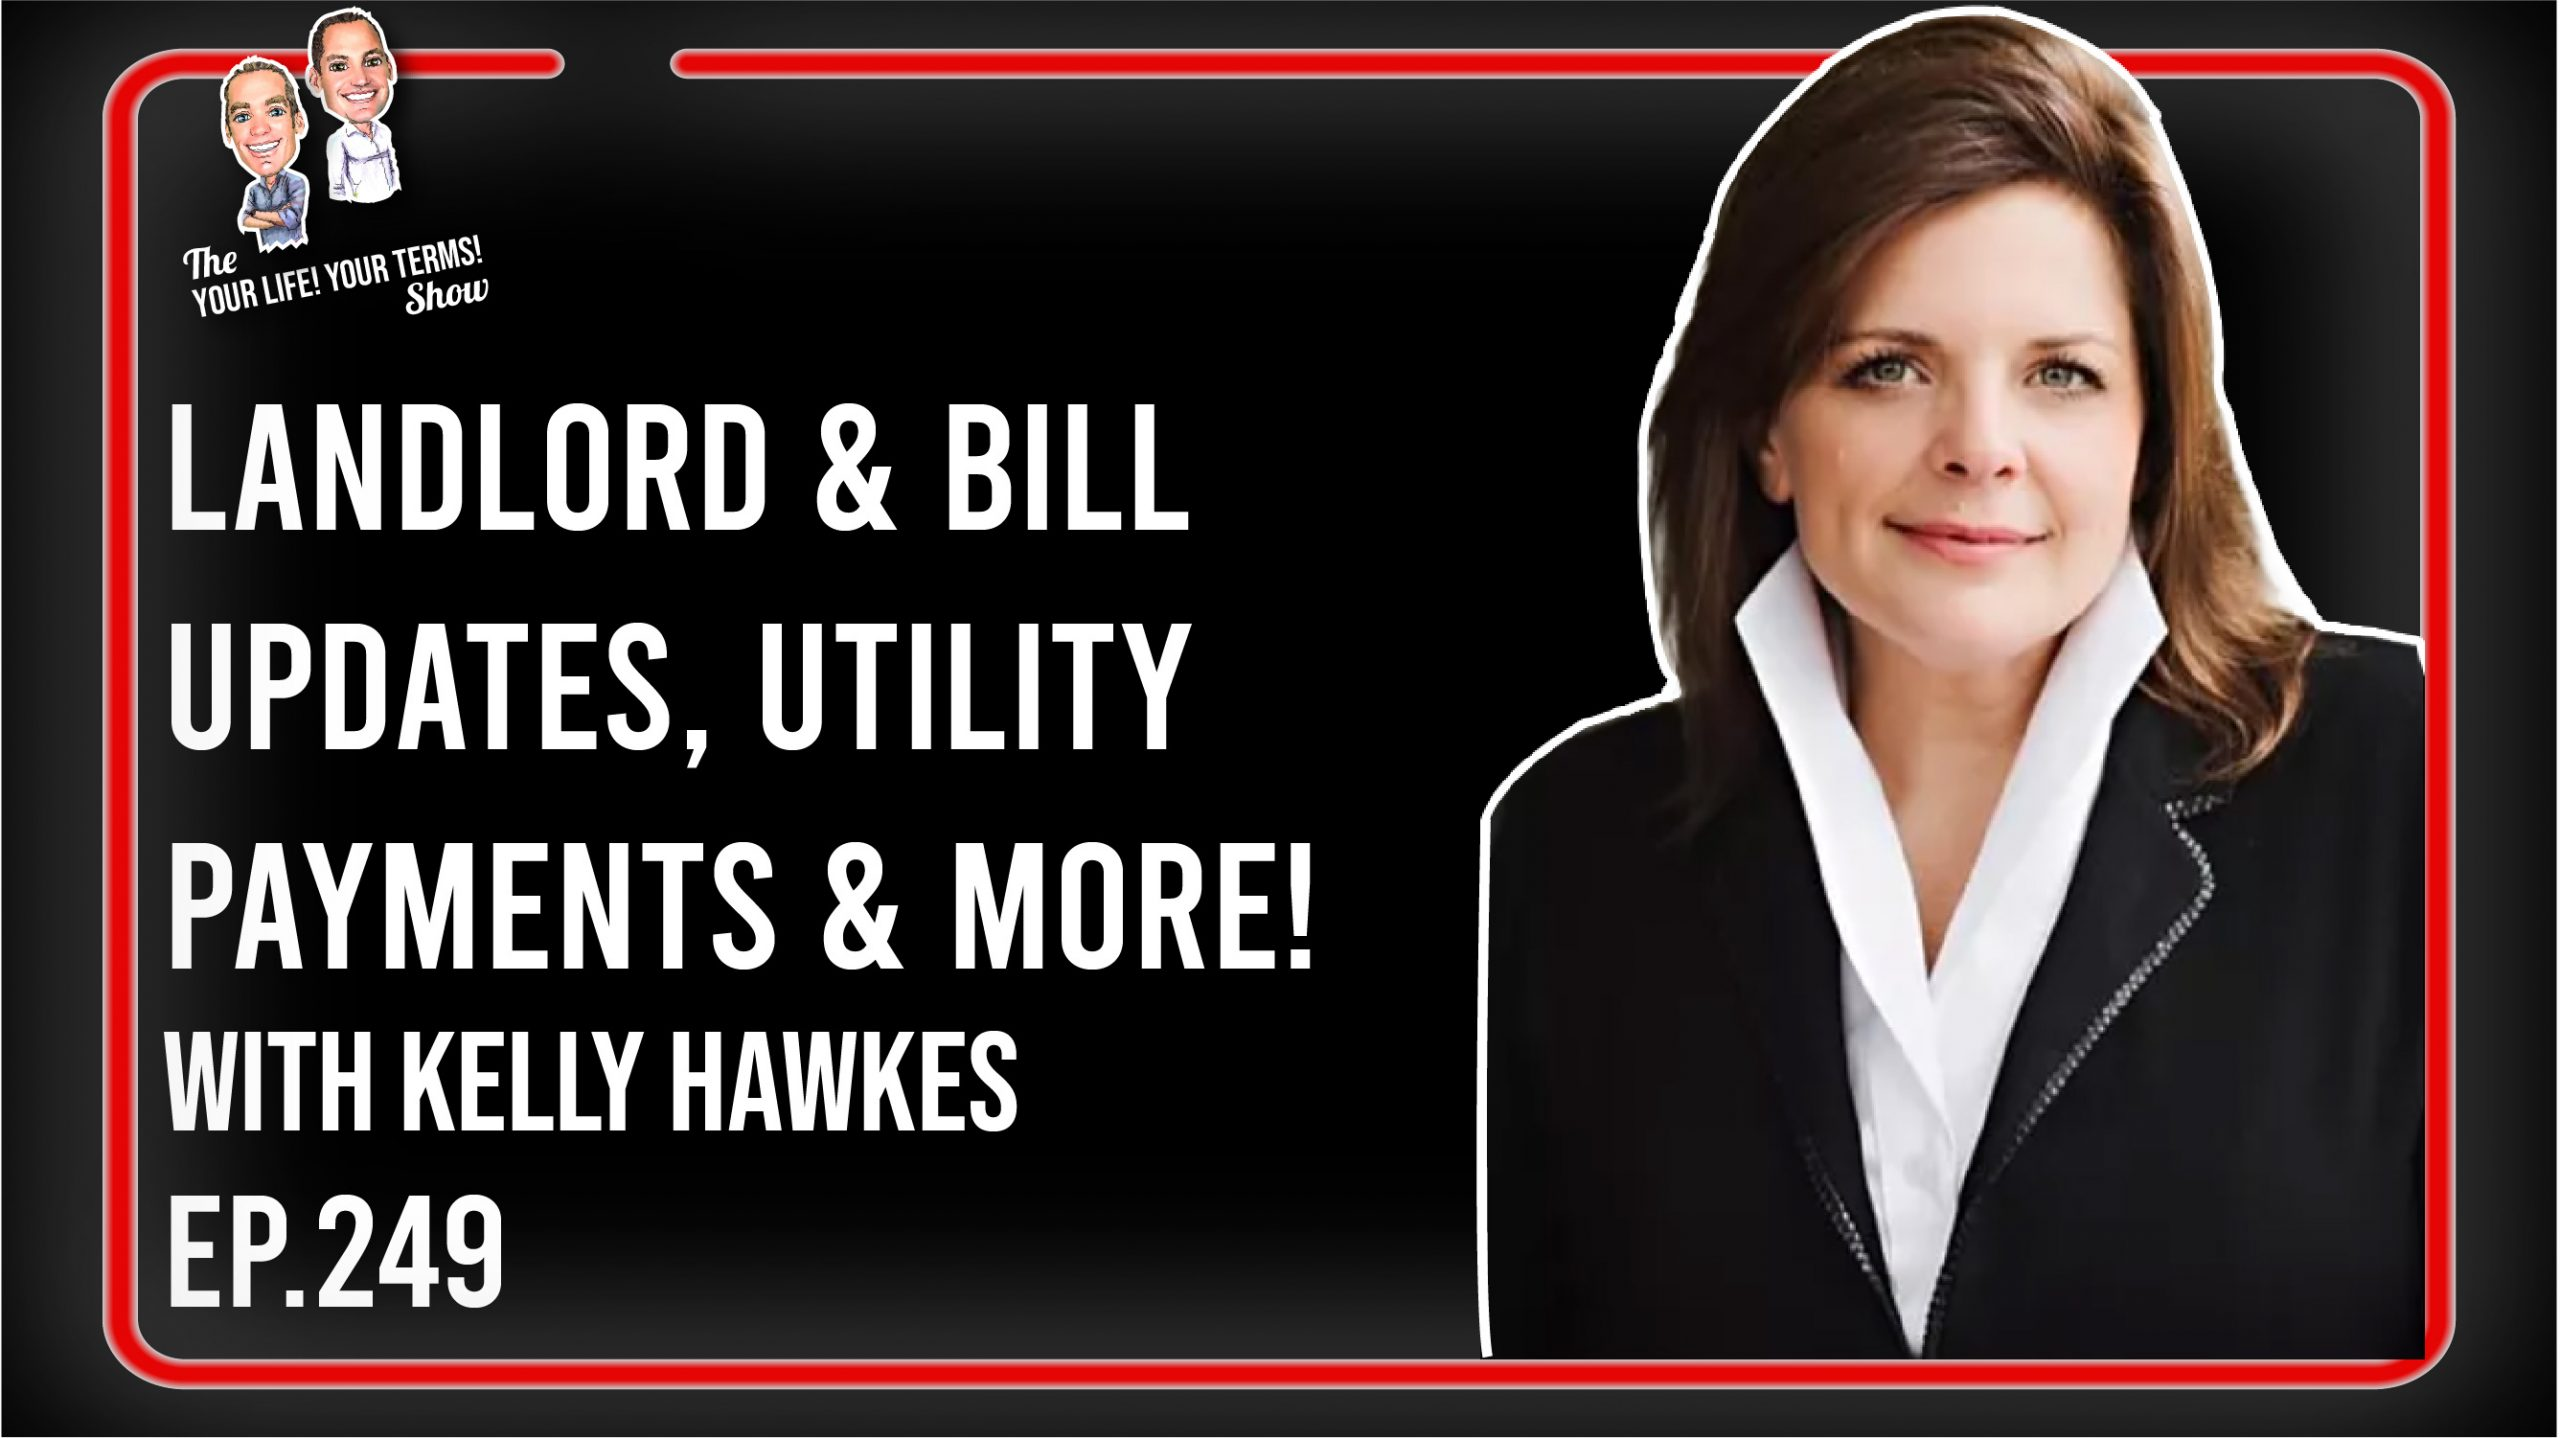 Kelly Hawkes - Landlord & Bill 184 Updates, Utility Payments, Rent Arrears & Property Damage image